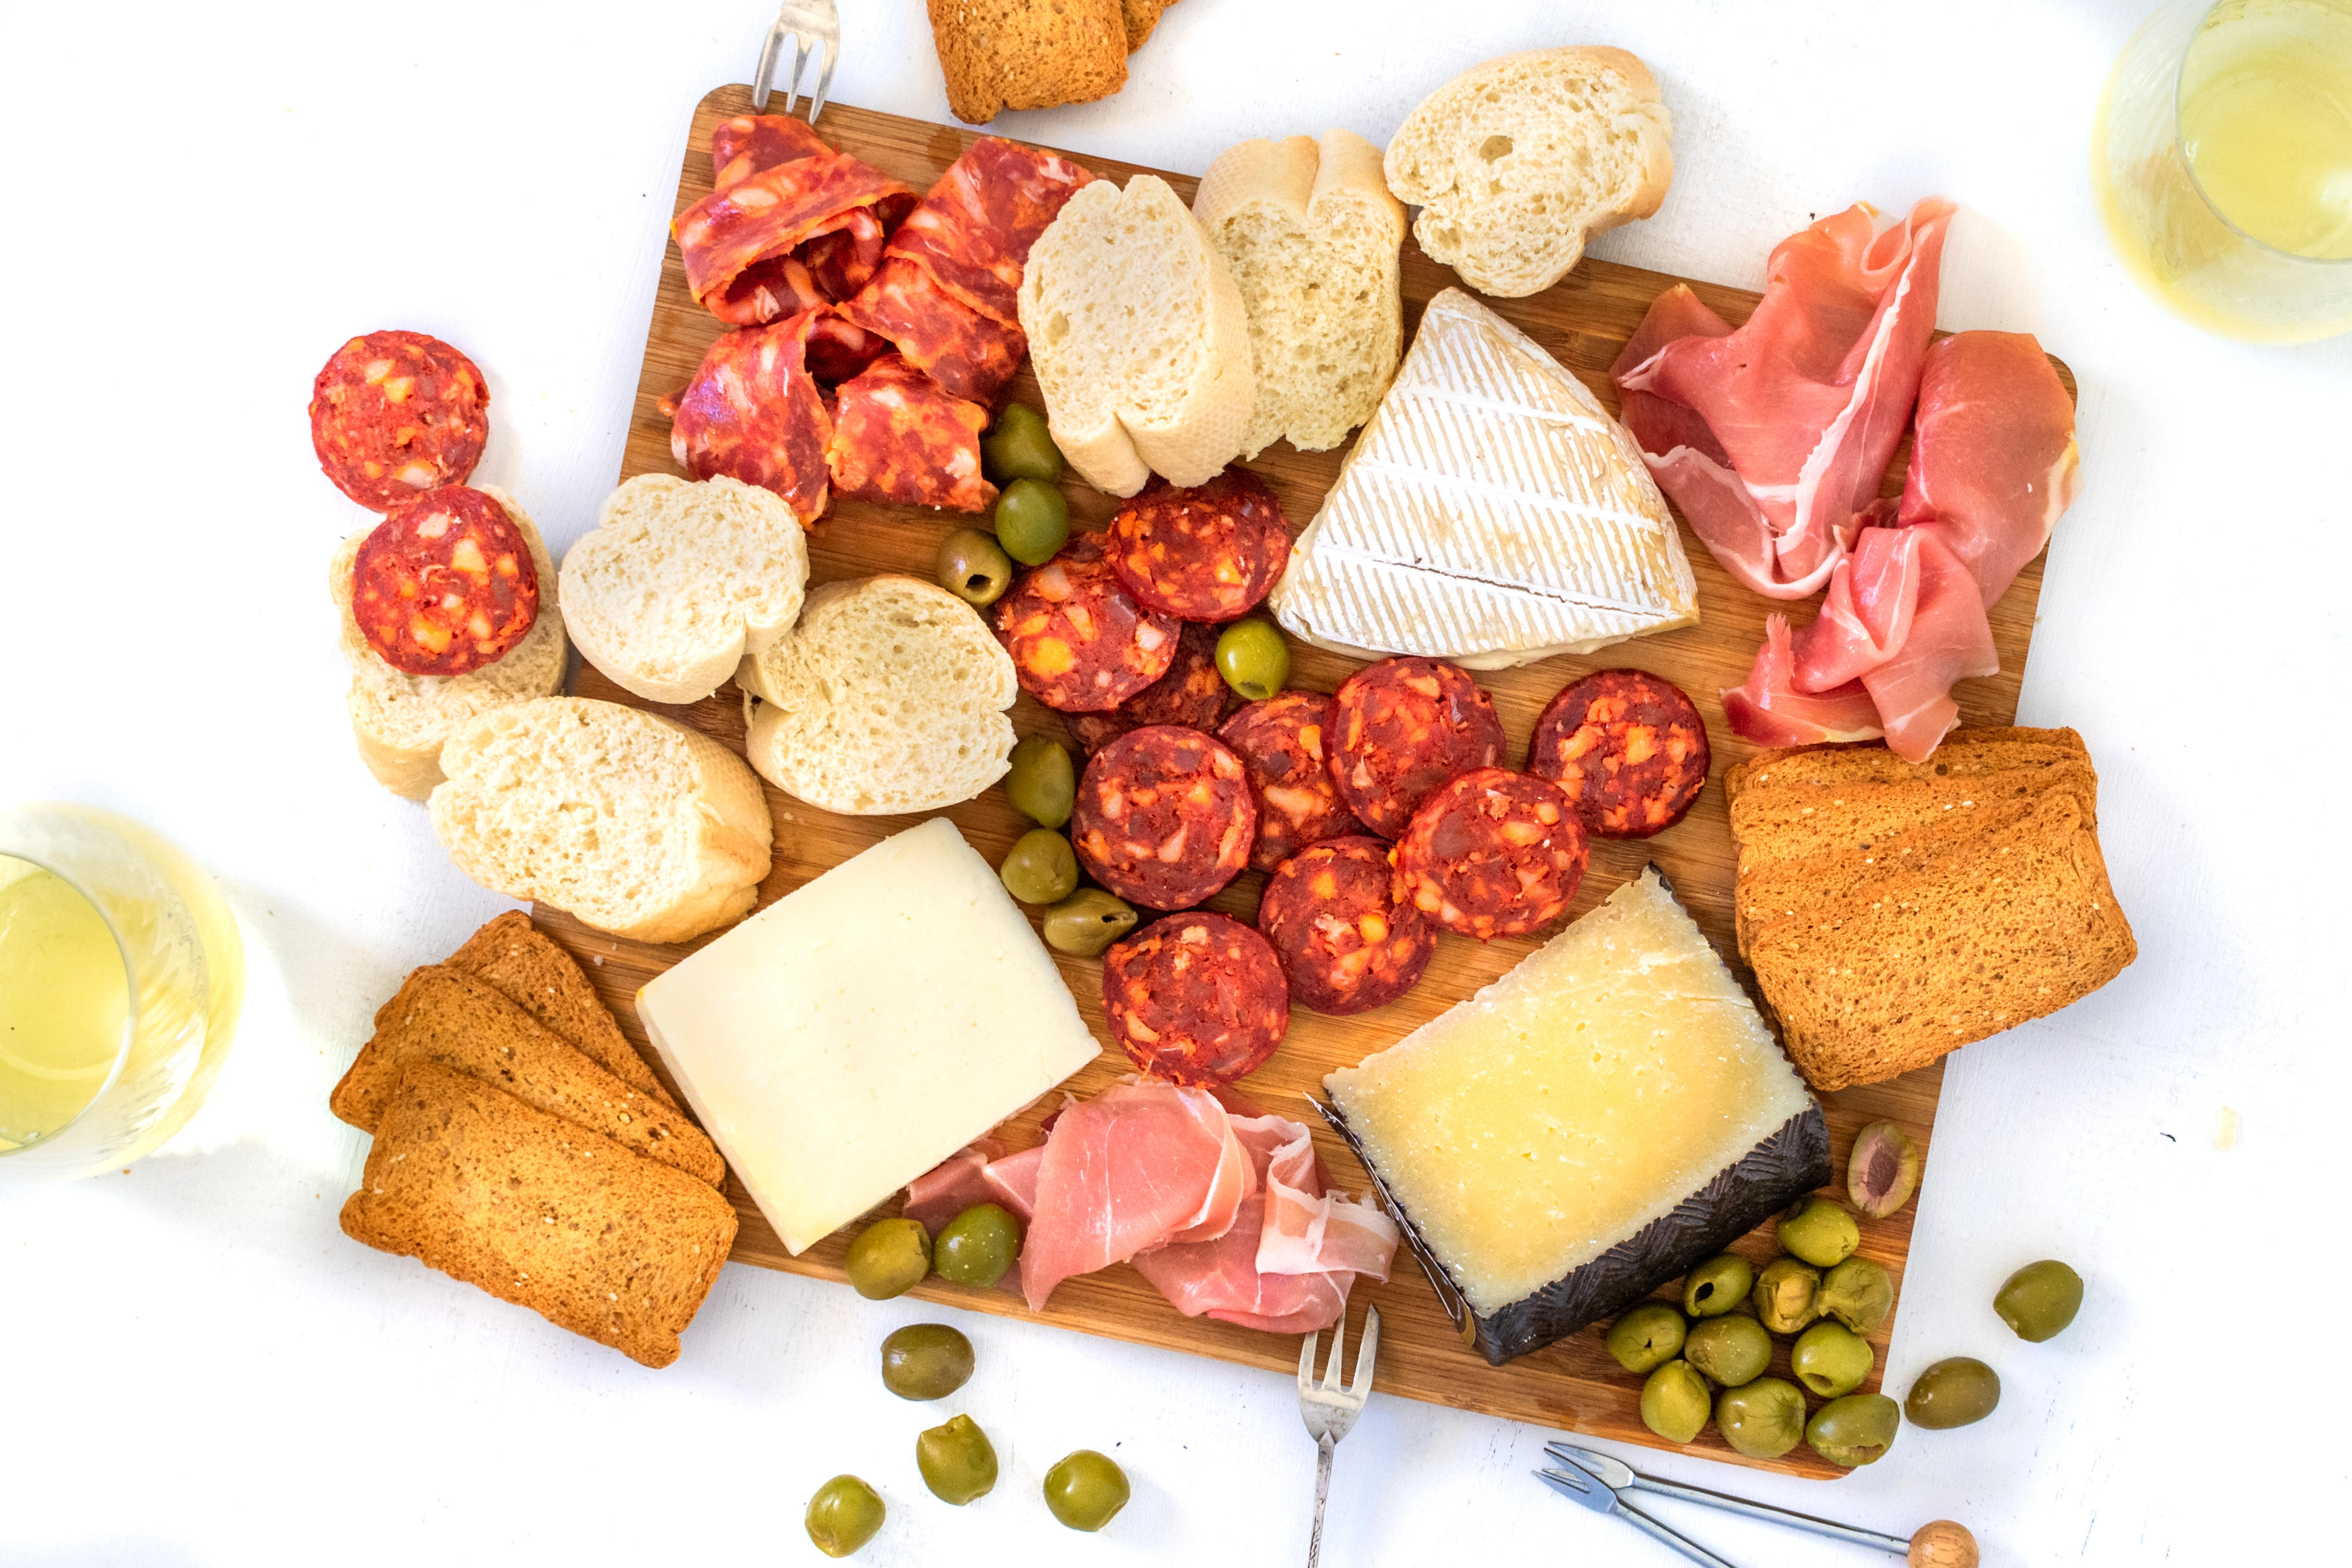 A platter with cheese, cured meat, bread, crackers, and olives.